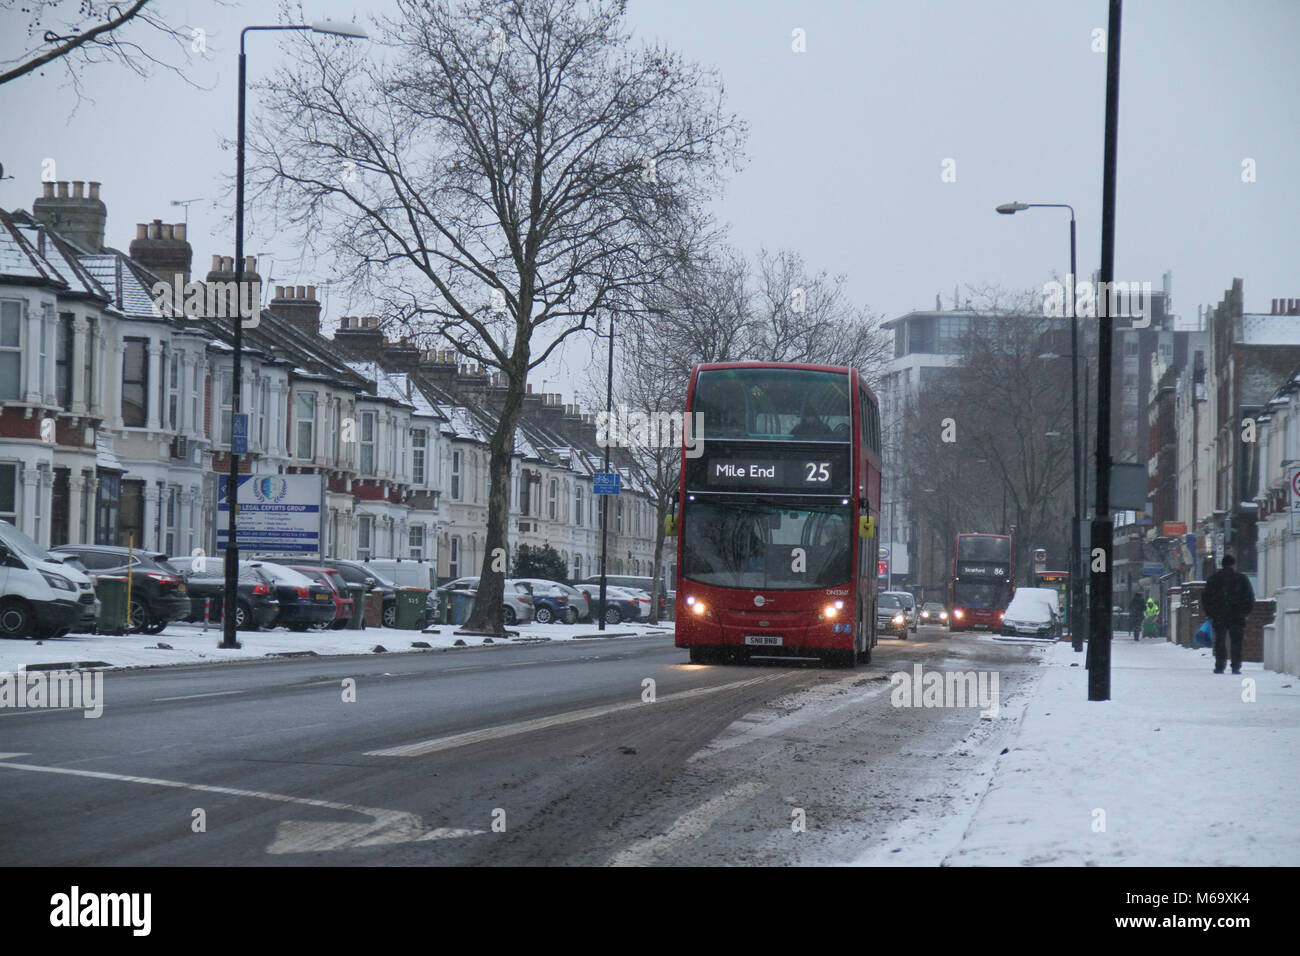 London, UK. 1st Mar, 2018. A London red bus on a gritted Romford Road partly were covered with snow after heavy - Stock Image